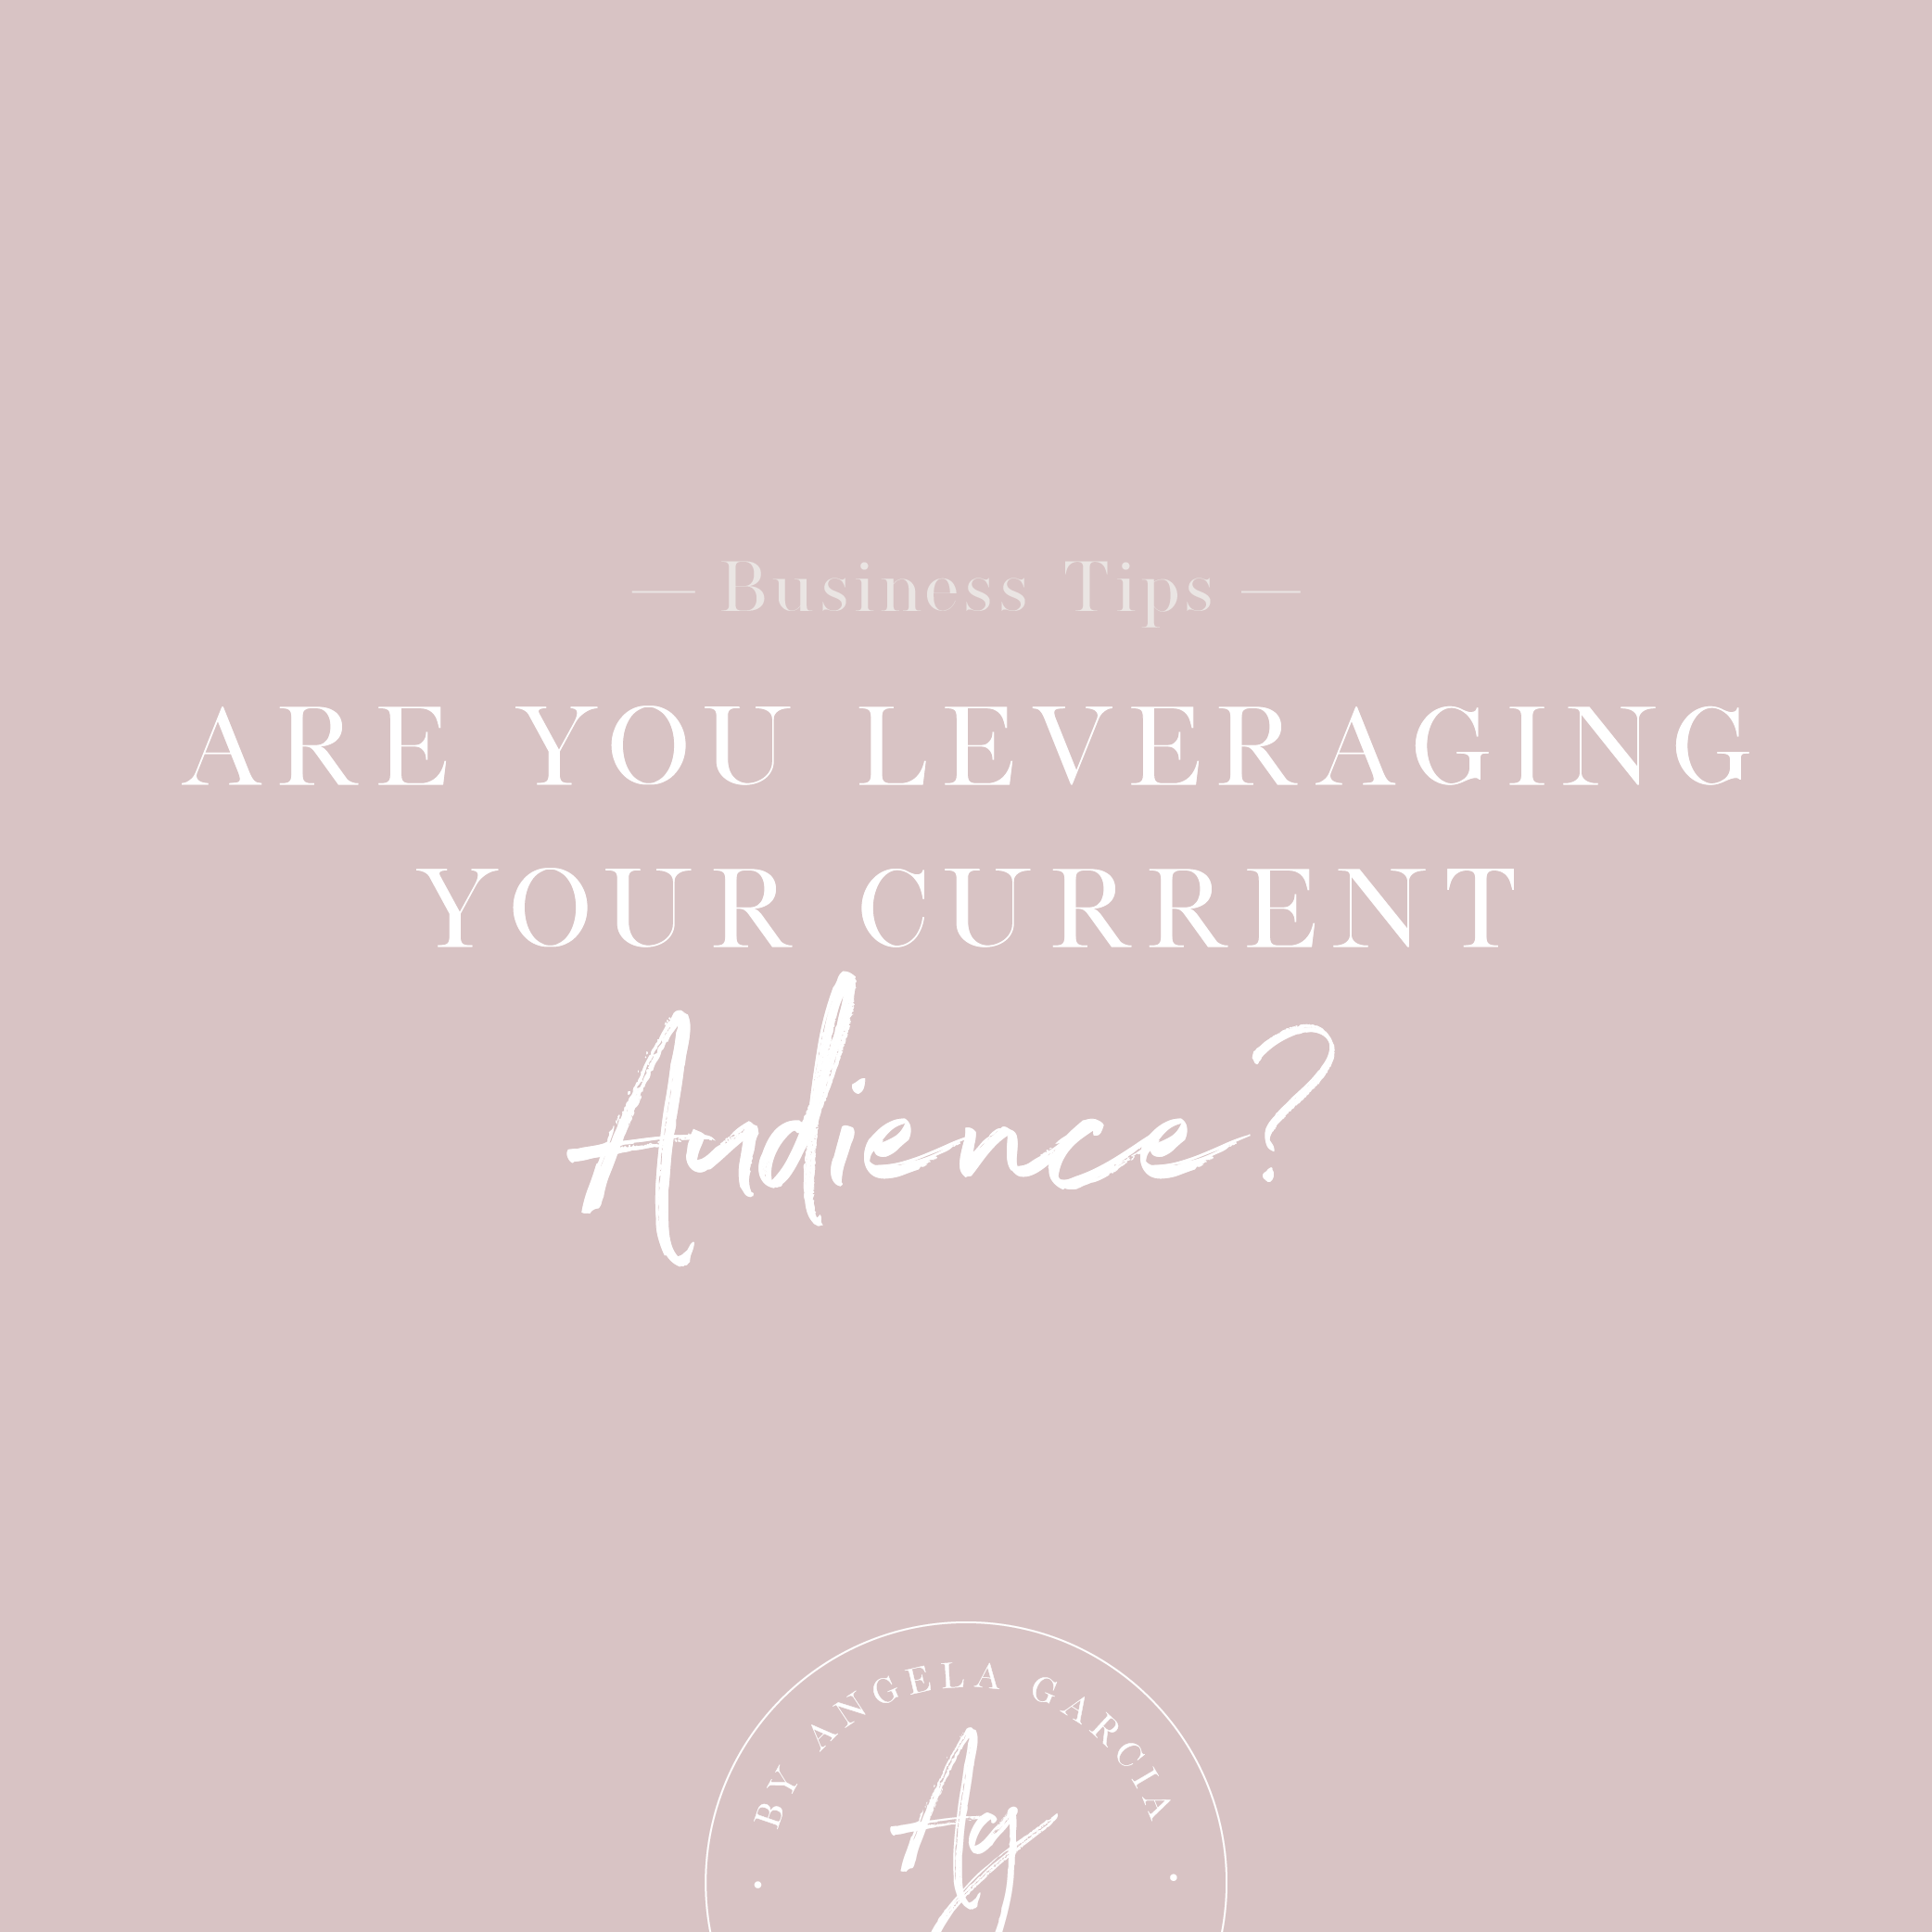 Are you leveraging your current audience?